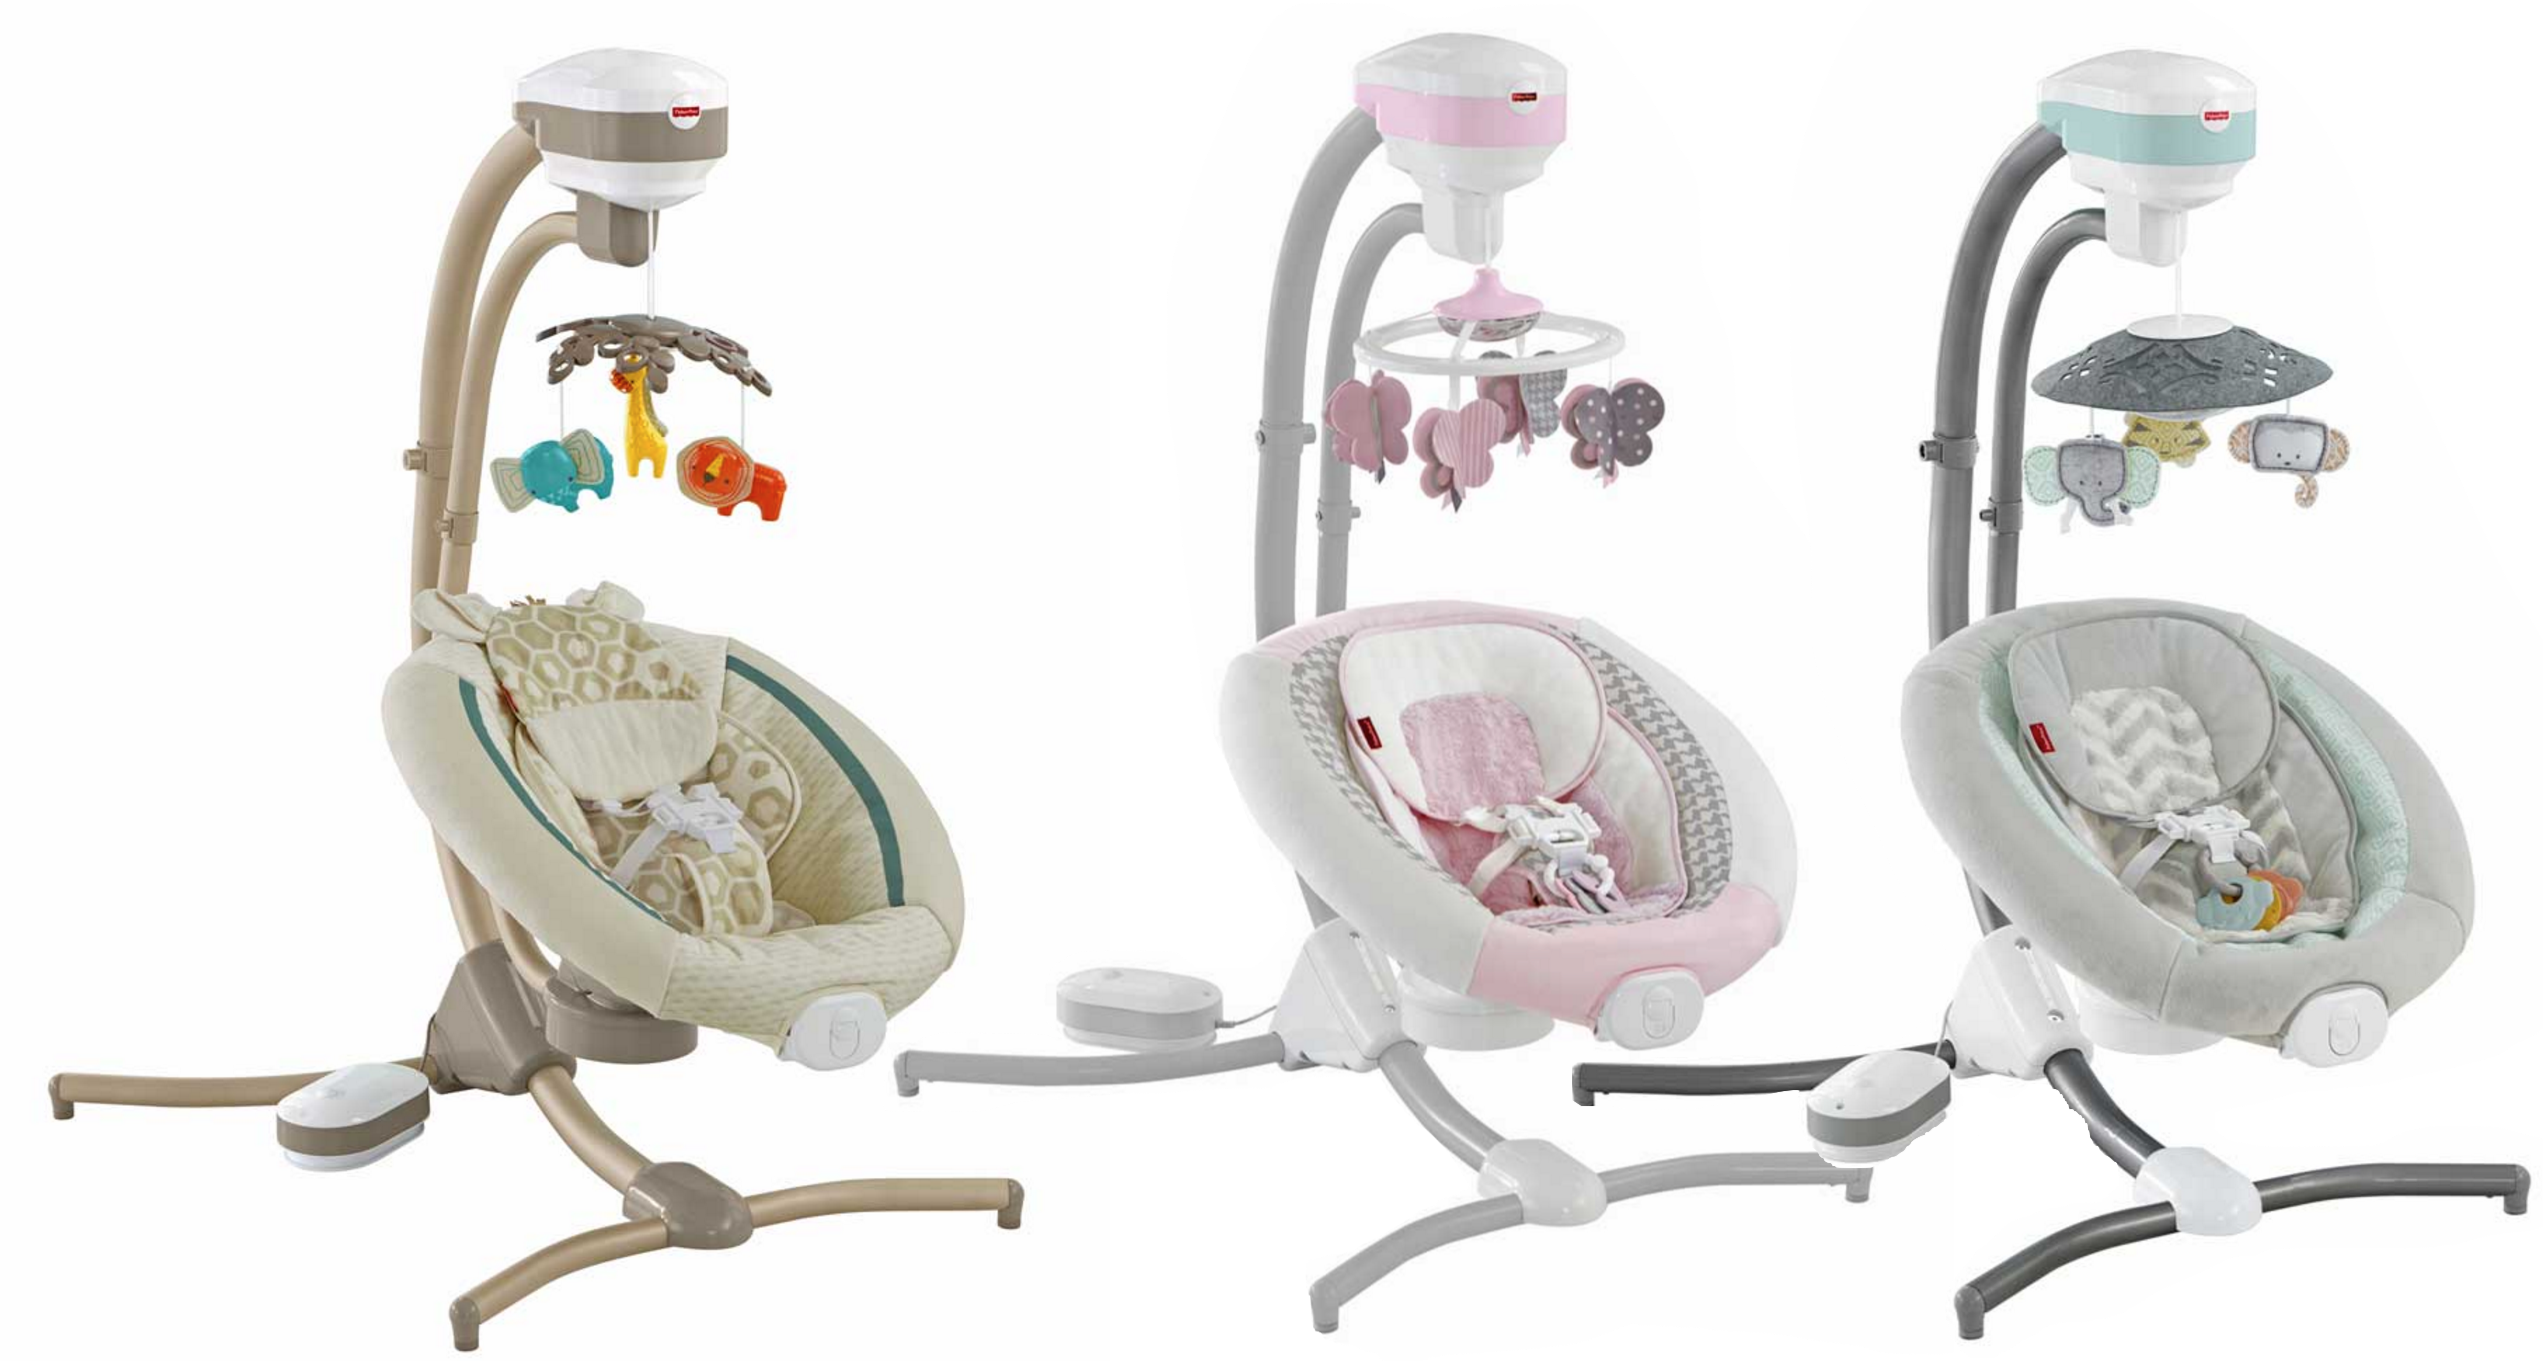 Fisher-Price Recalls 34,000 Cradles Over Safety Concerns